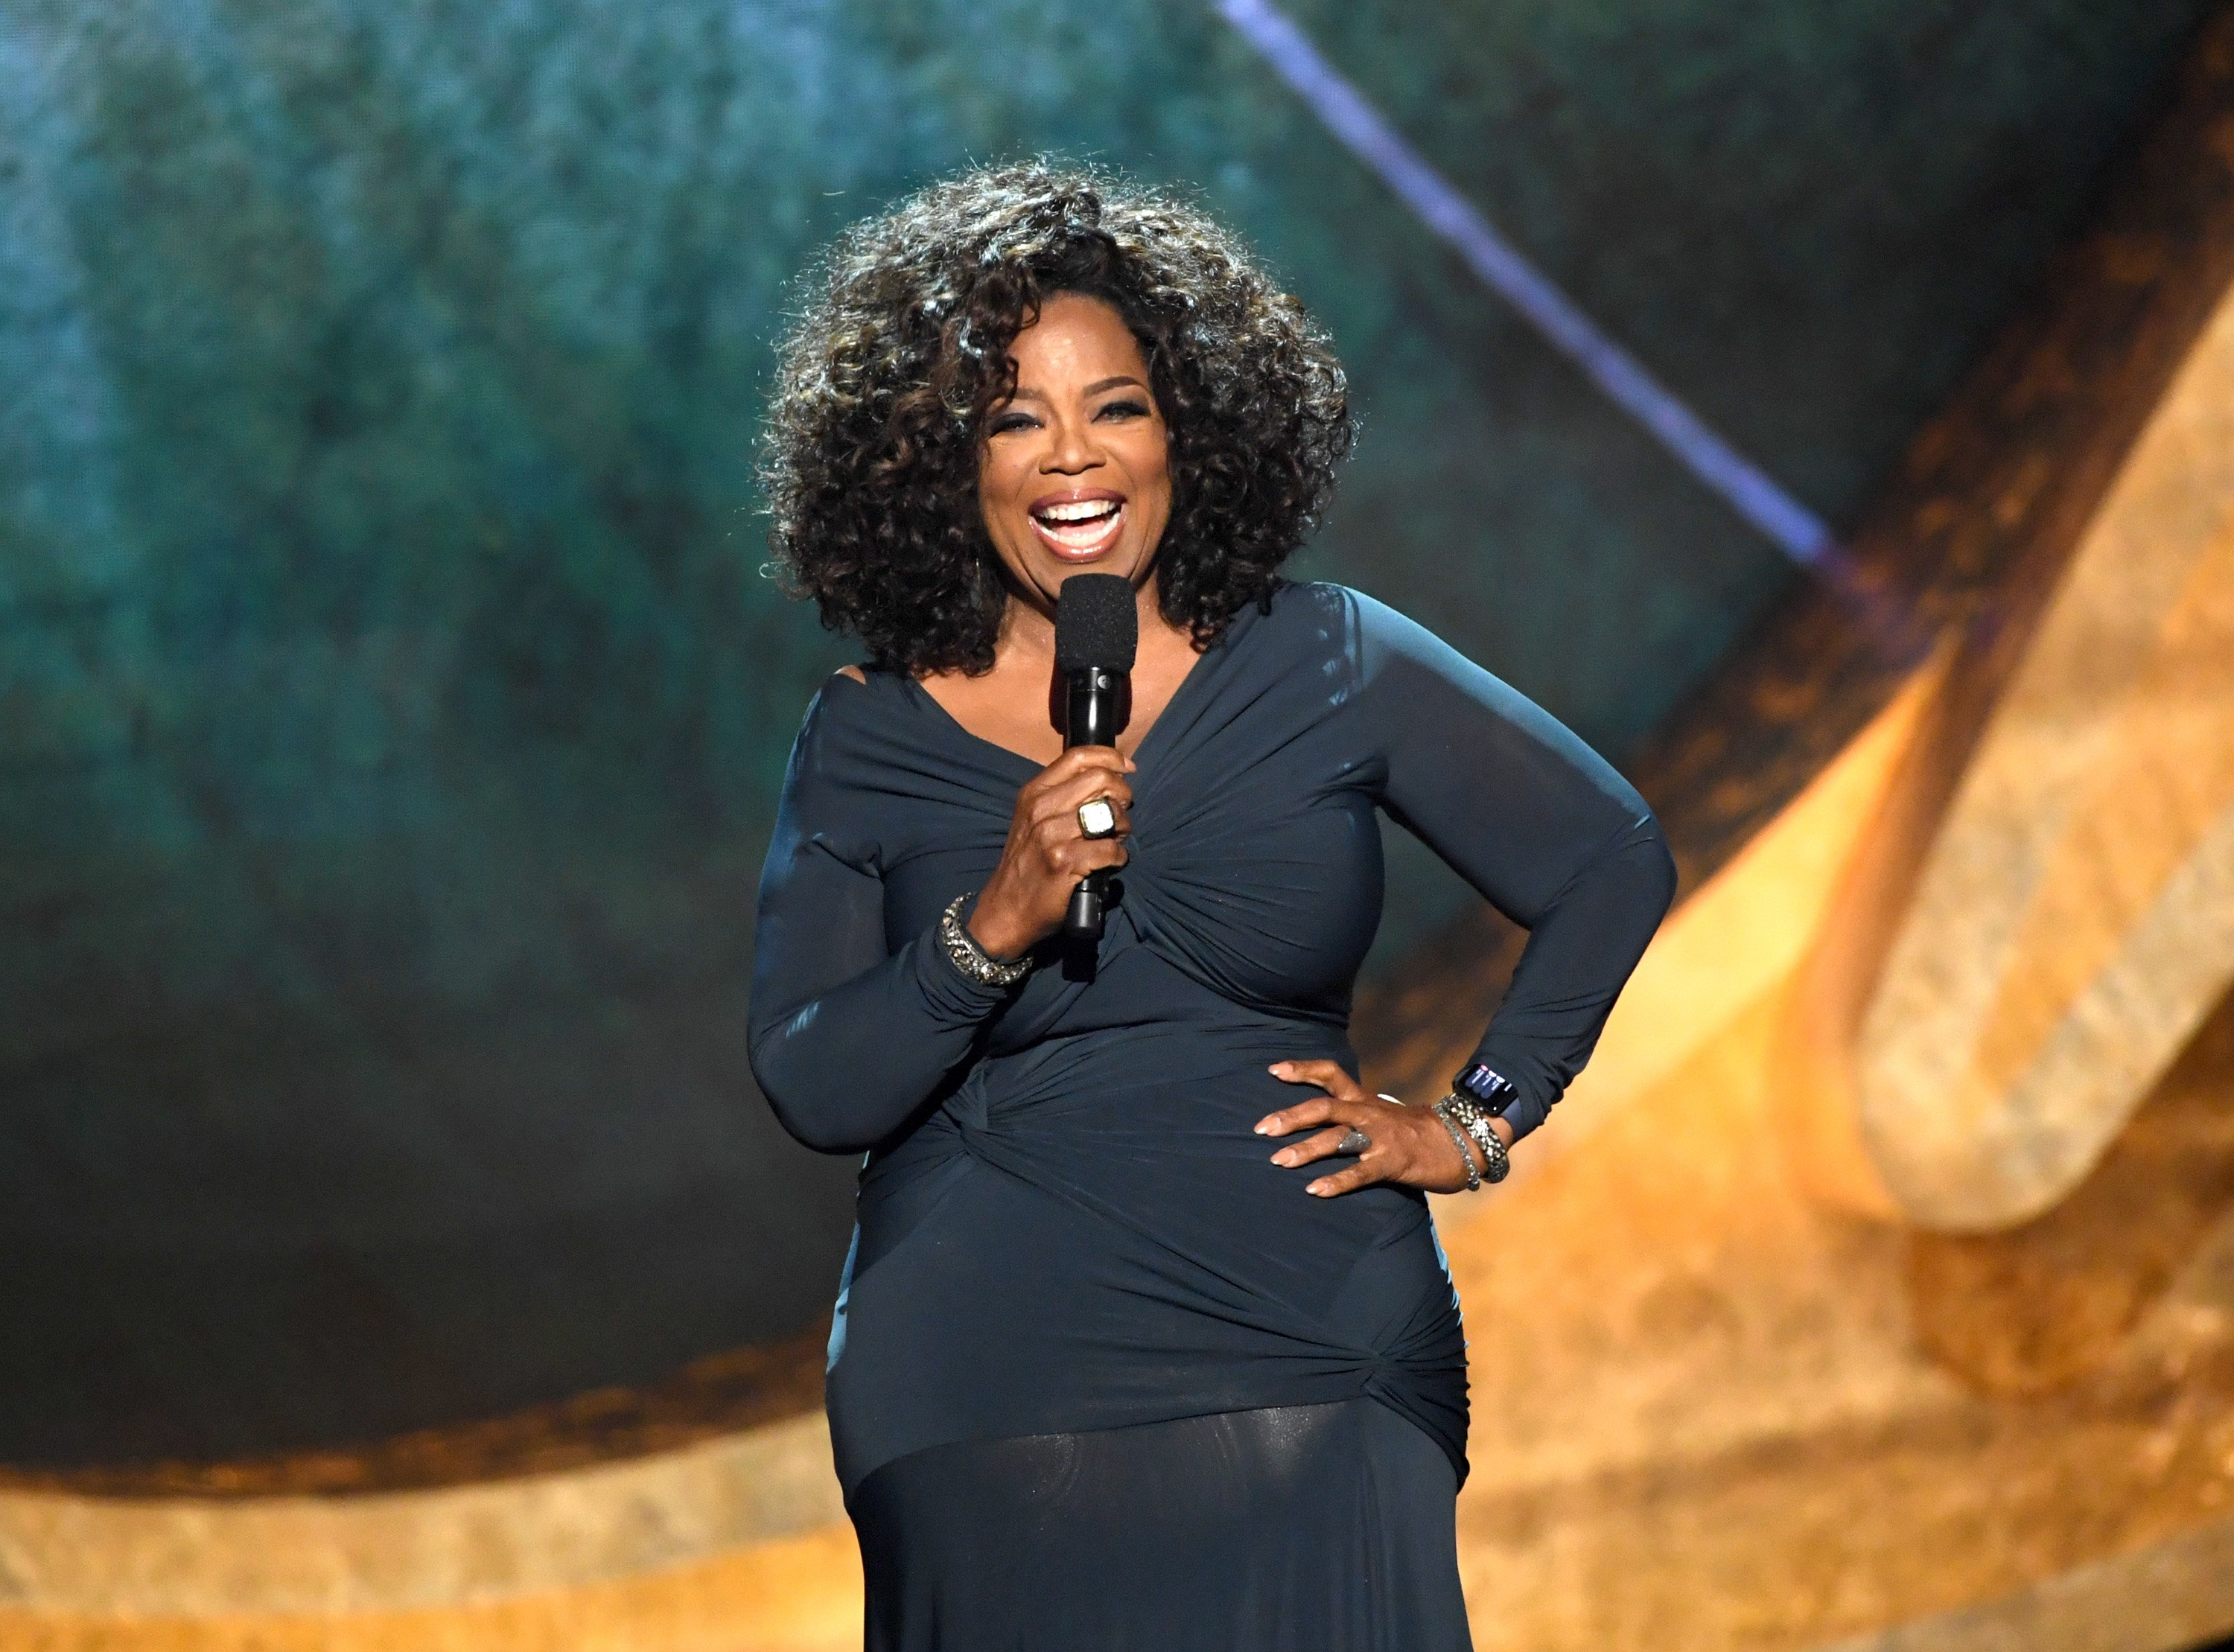 """Oprah Winfrey at """"Q85: A Musical Celebration for Quincy Jones"""" at the Microsoft Theatre on September 25, 2018 in Los Angeles, California.